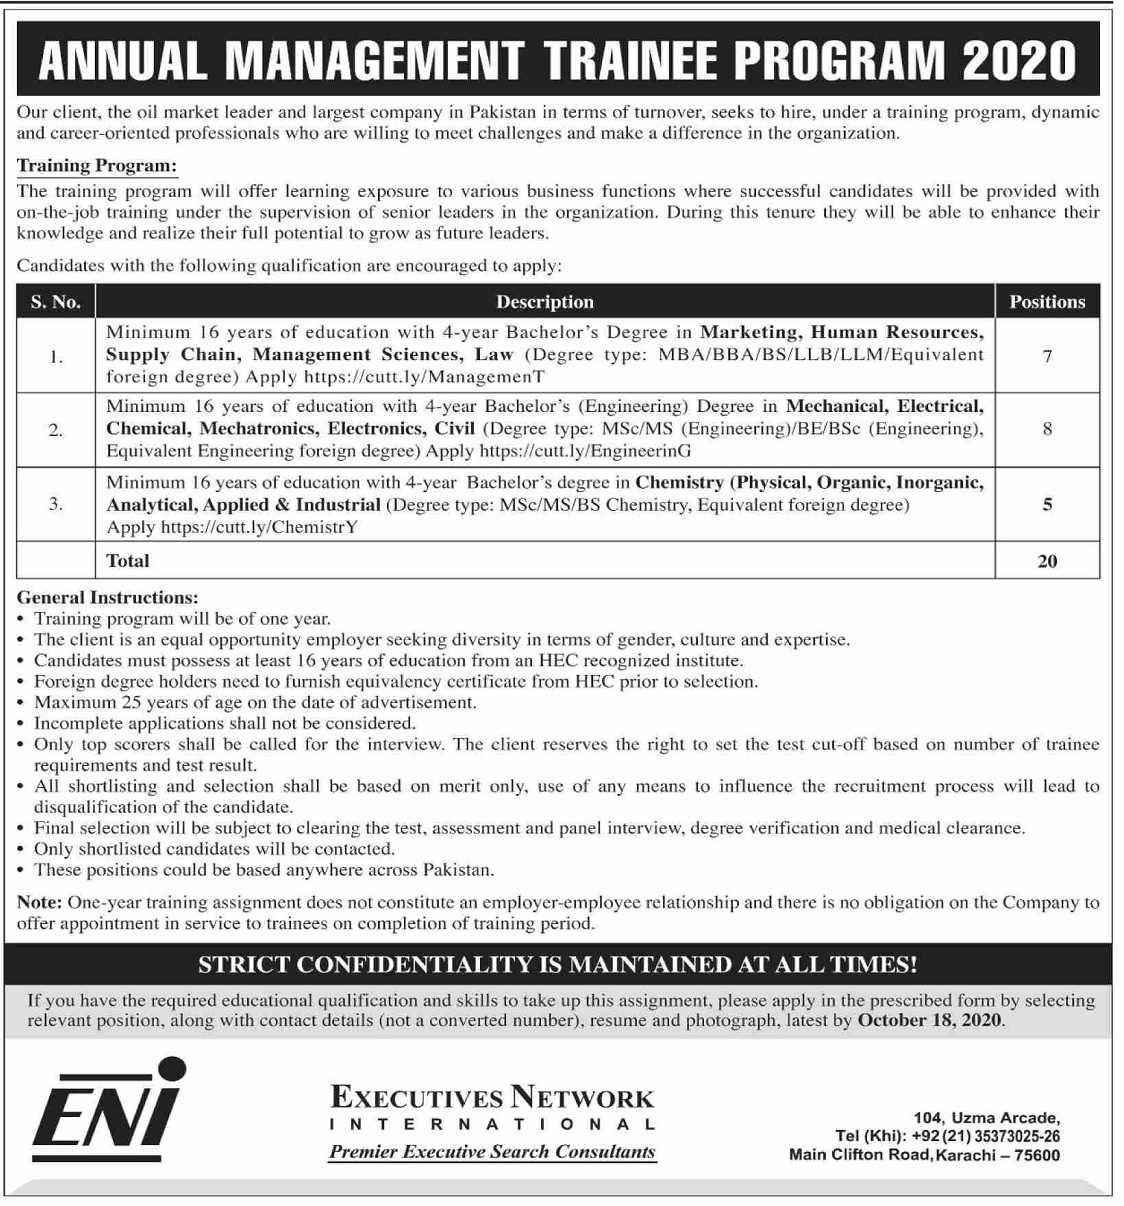 Management Trainee Program 2020 for Executive Network International ENI Jobs